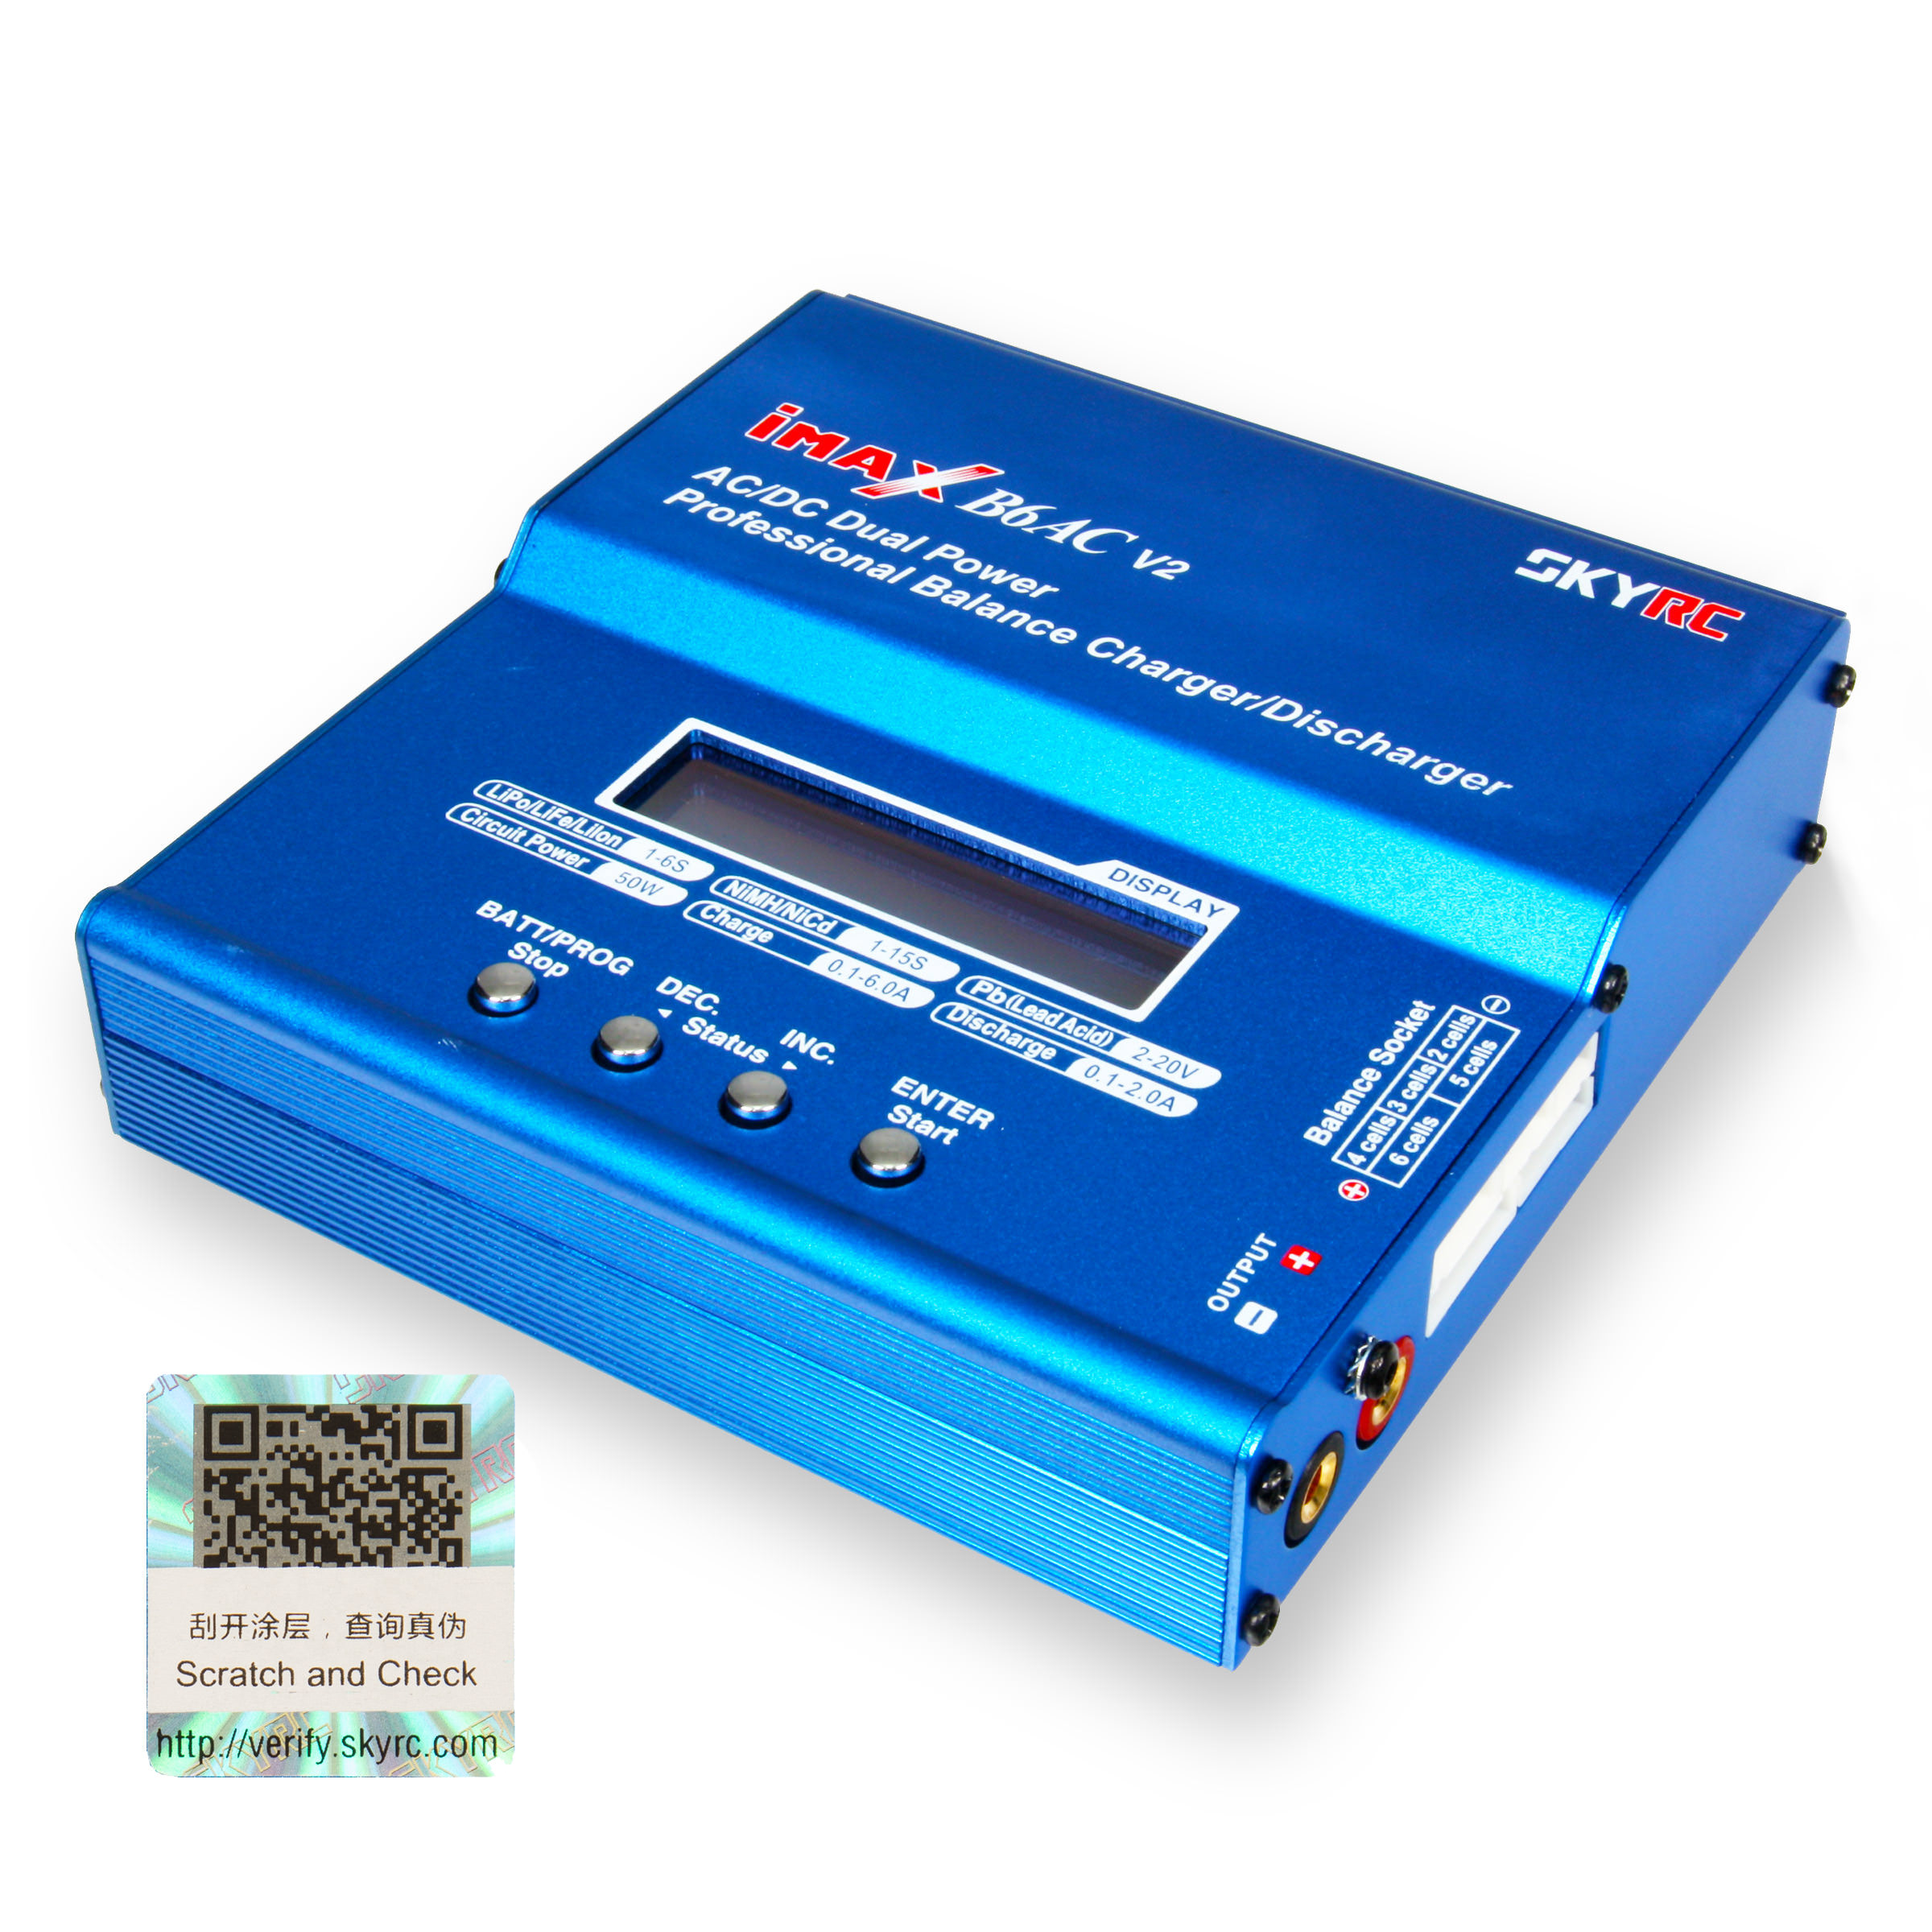 SkyRC IMAX B6AC V2 Version 2 Digital RC 3S LiPo NiMH Battery Balance Charger